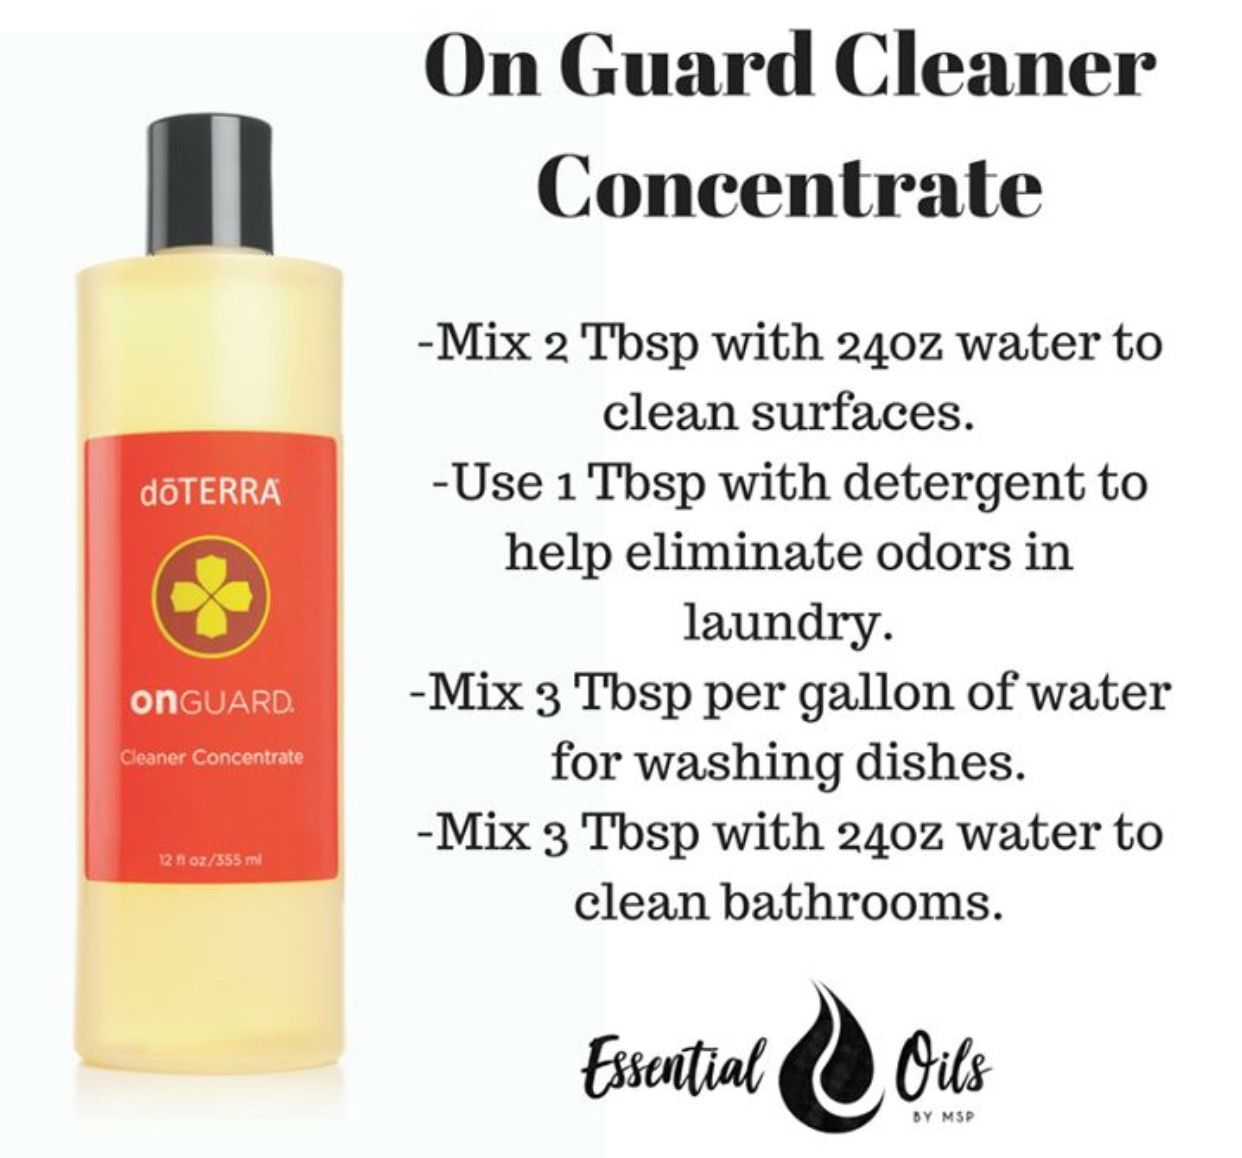 Doterra bathroom cleaner - On Guard Cleaner Concentrate Uses